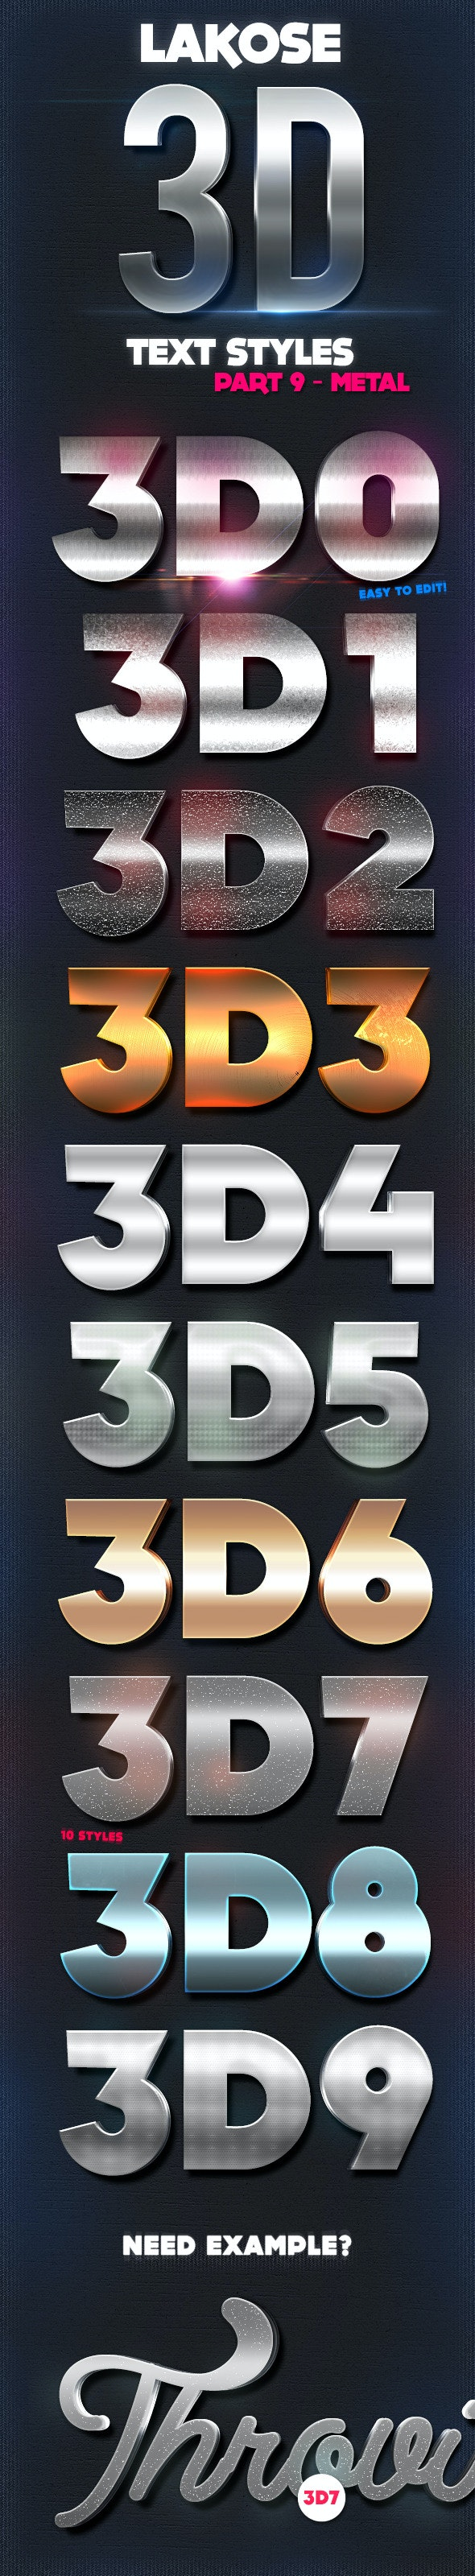 Lakose 3D Text Styles Part 9 - Text Effects Styles